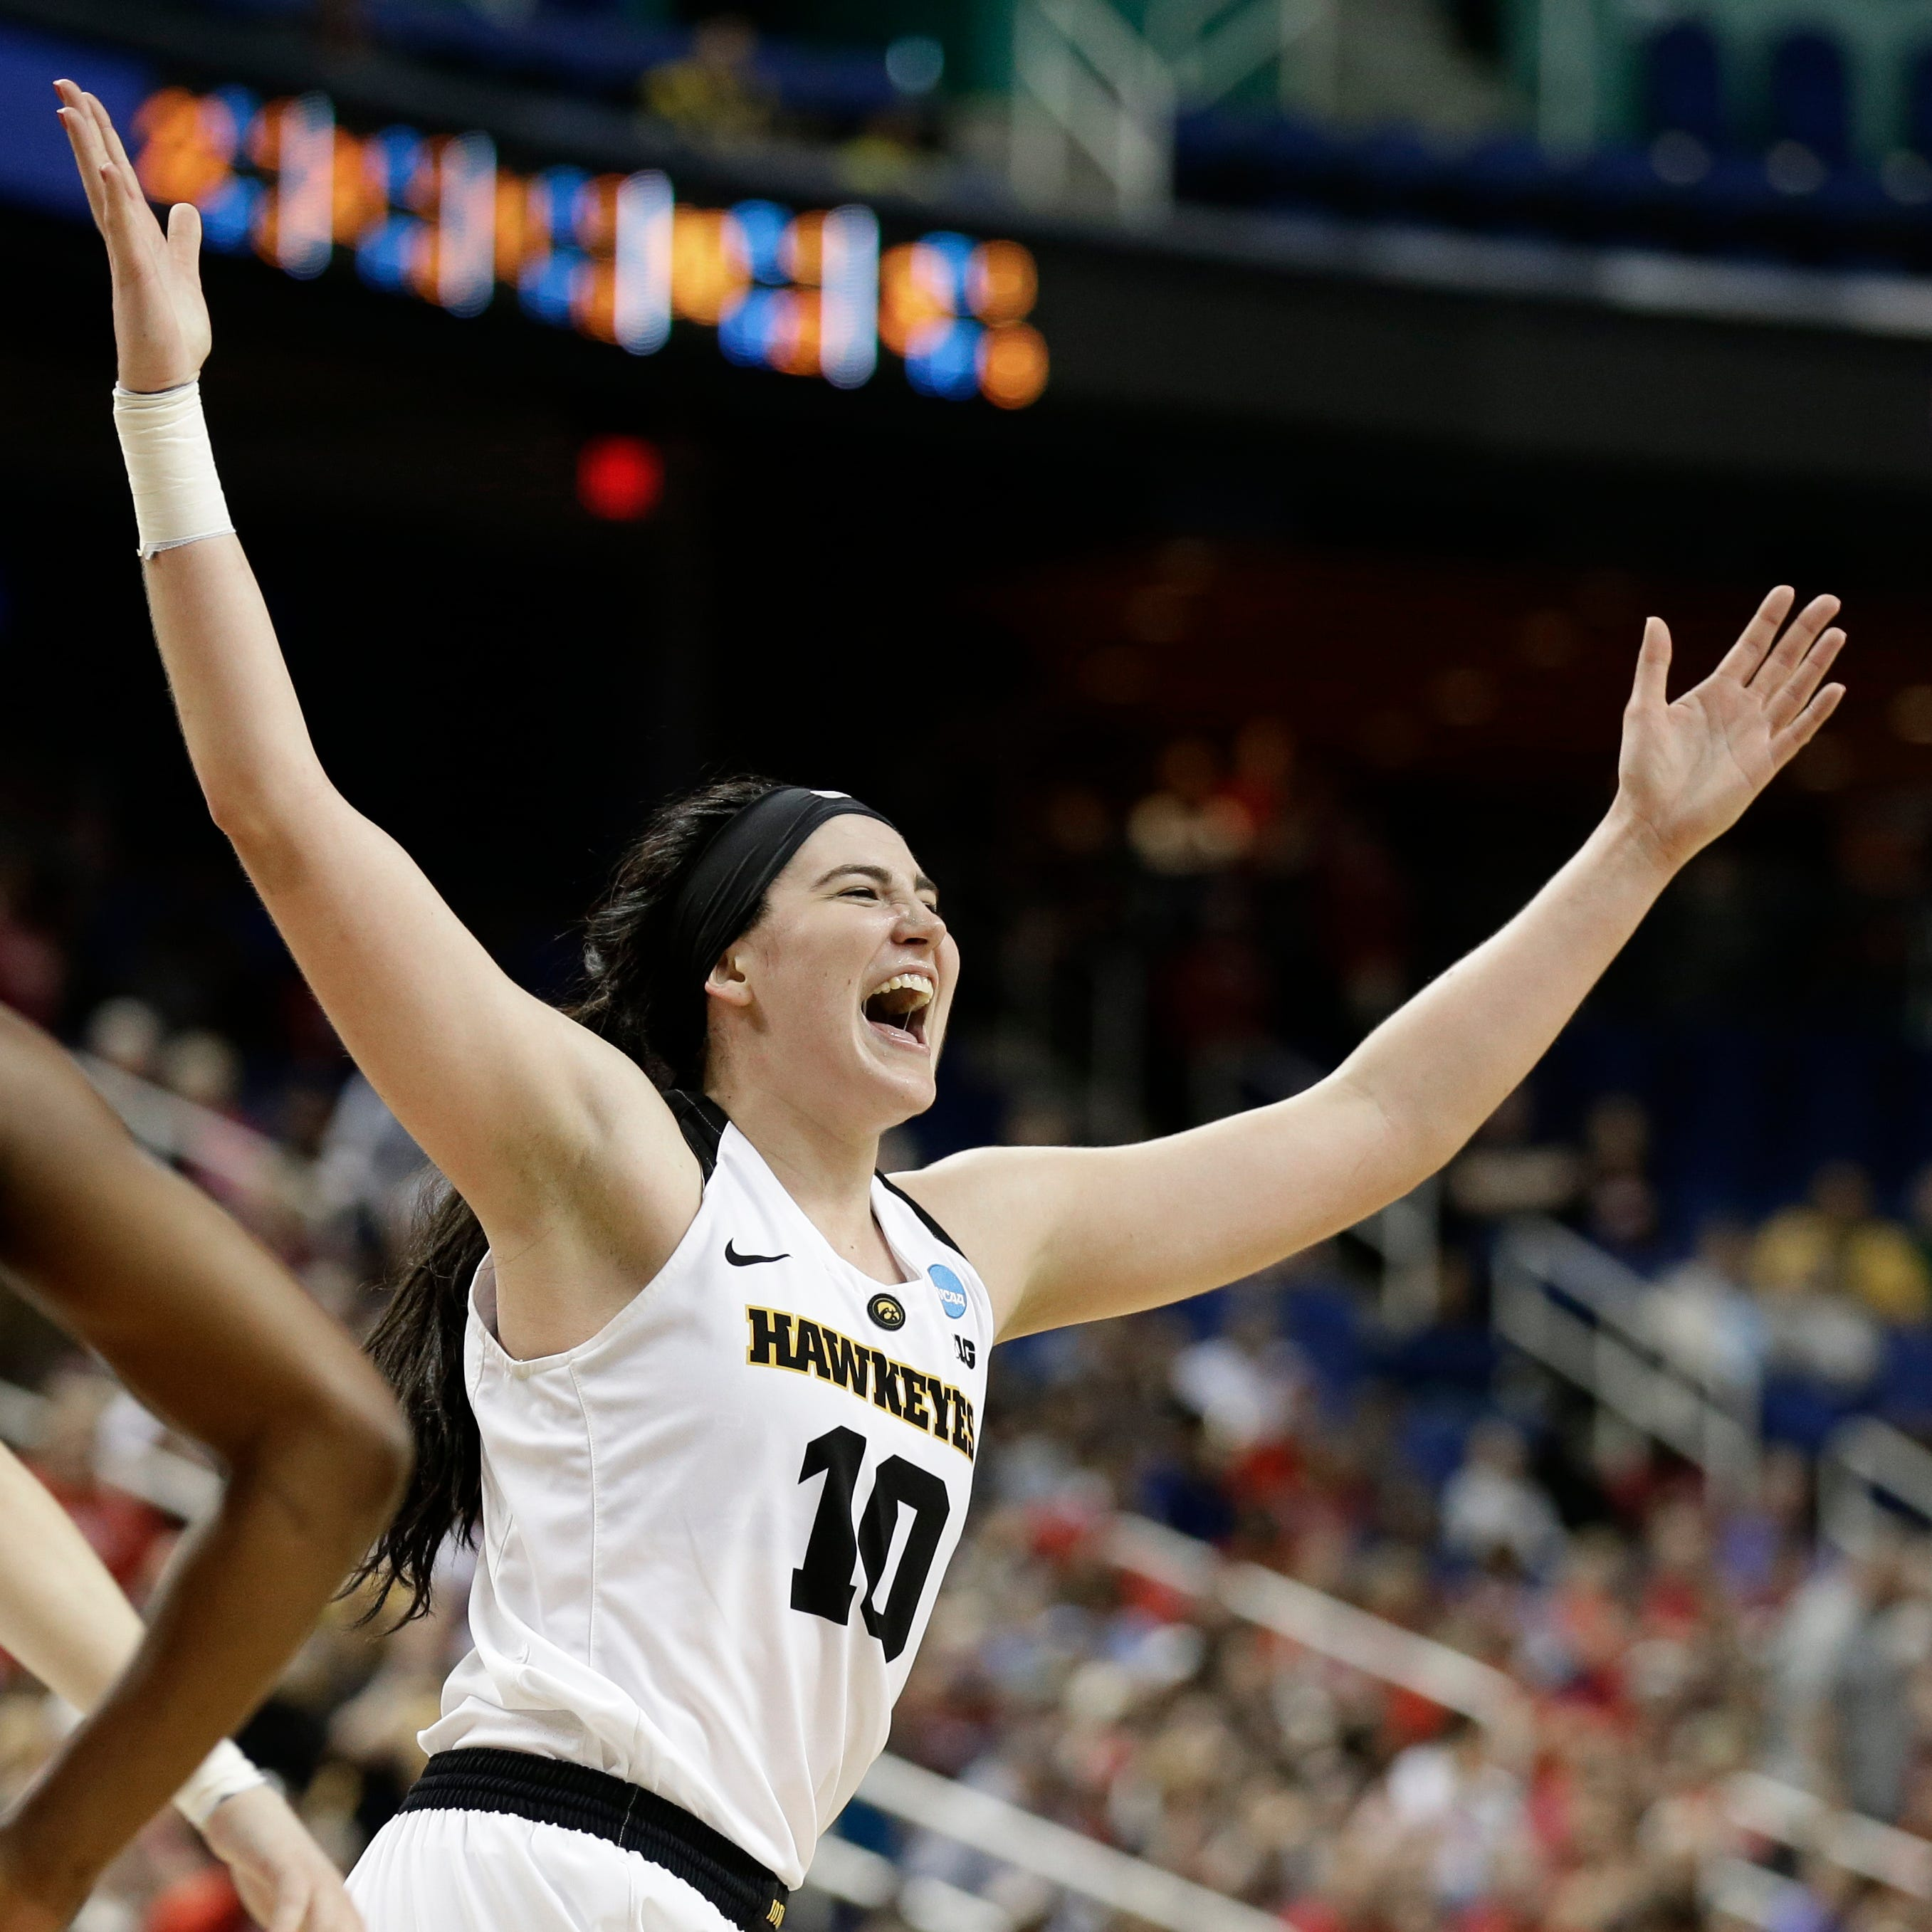 Still going: Iowa's Megan Gustafson wins third national player of the year award